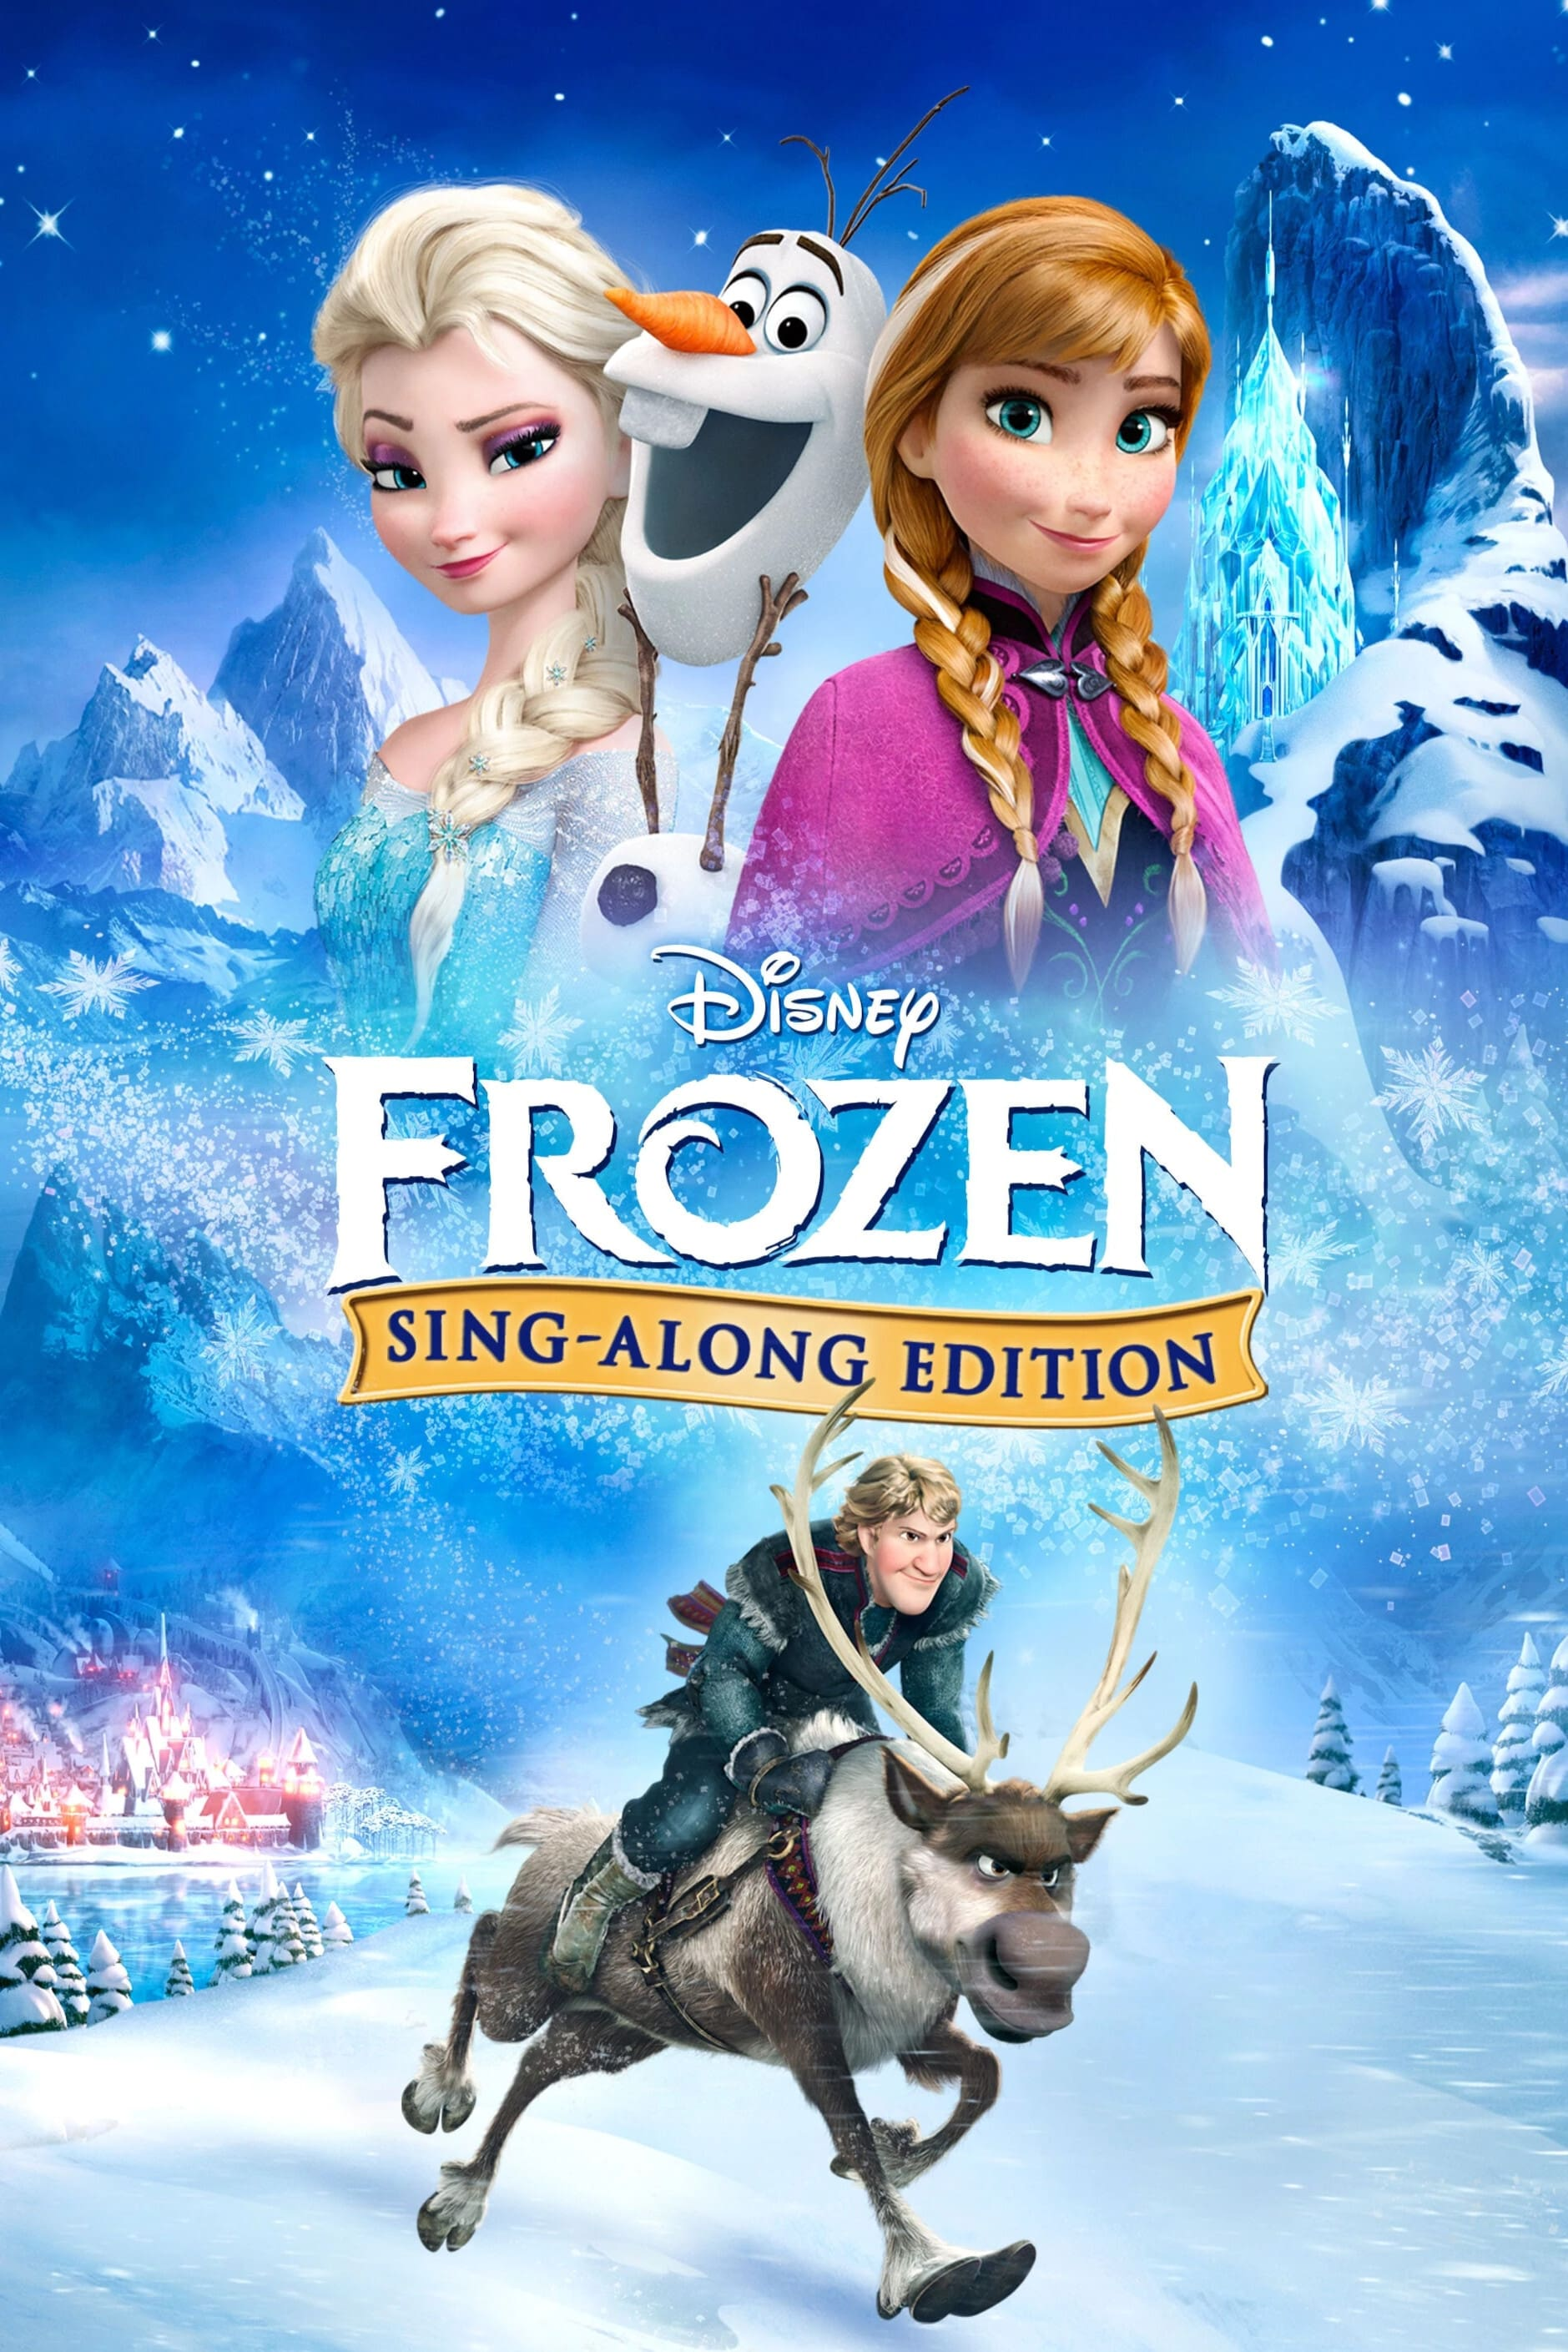 Frozen Sing-Along Edition (2014)